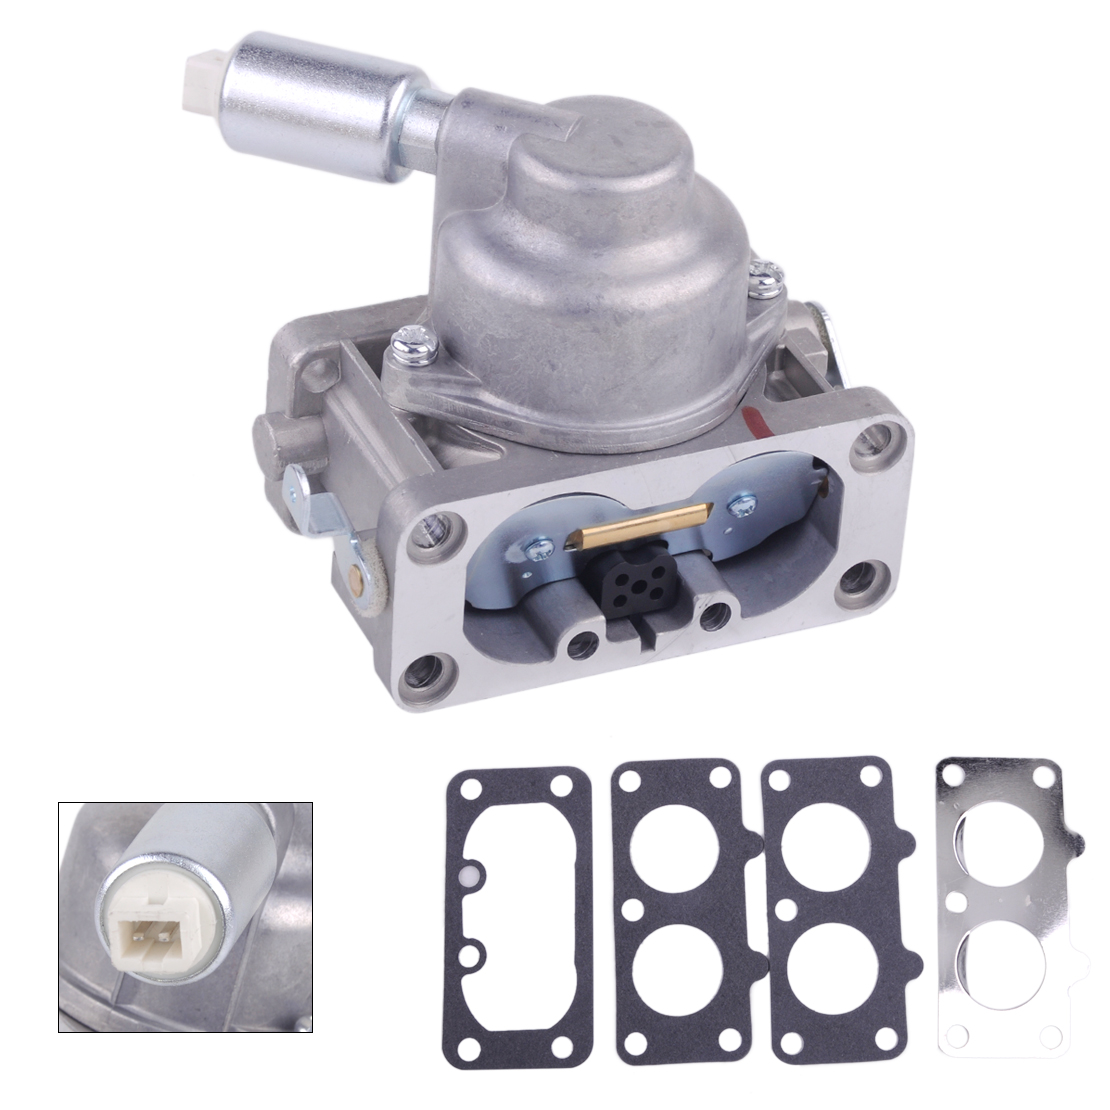 LETAOSK Carburetor Carb with Gasket fit for Briggs & Stratton 792295 Replacement цена